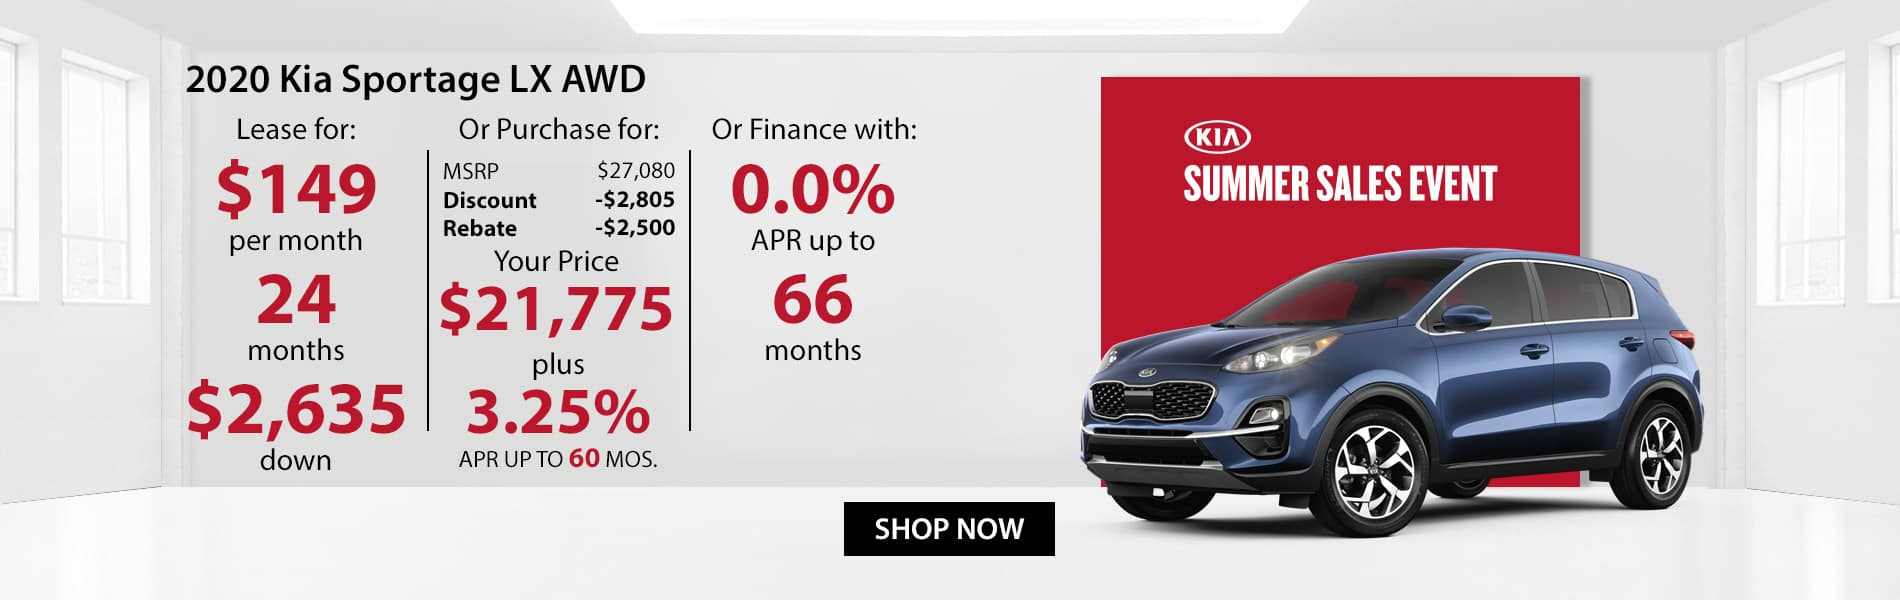 Special offer on 2020 Kia Sportage LX AWD Lease for $149 or Purchase for $21,775 with 3.25% APR or get 0% APR for 66 months.